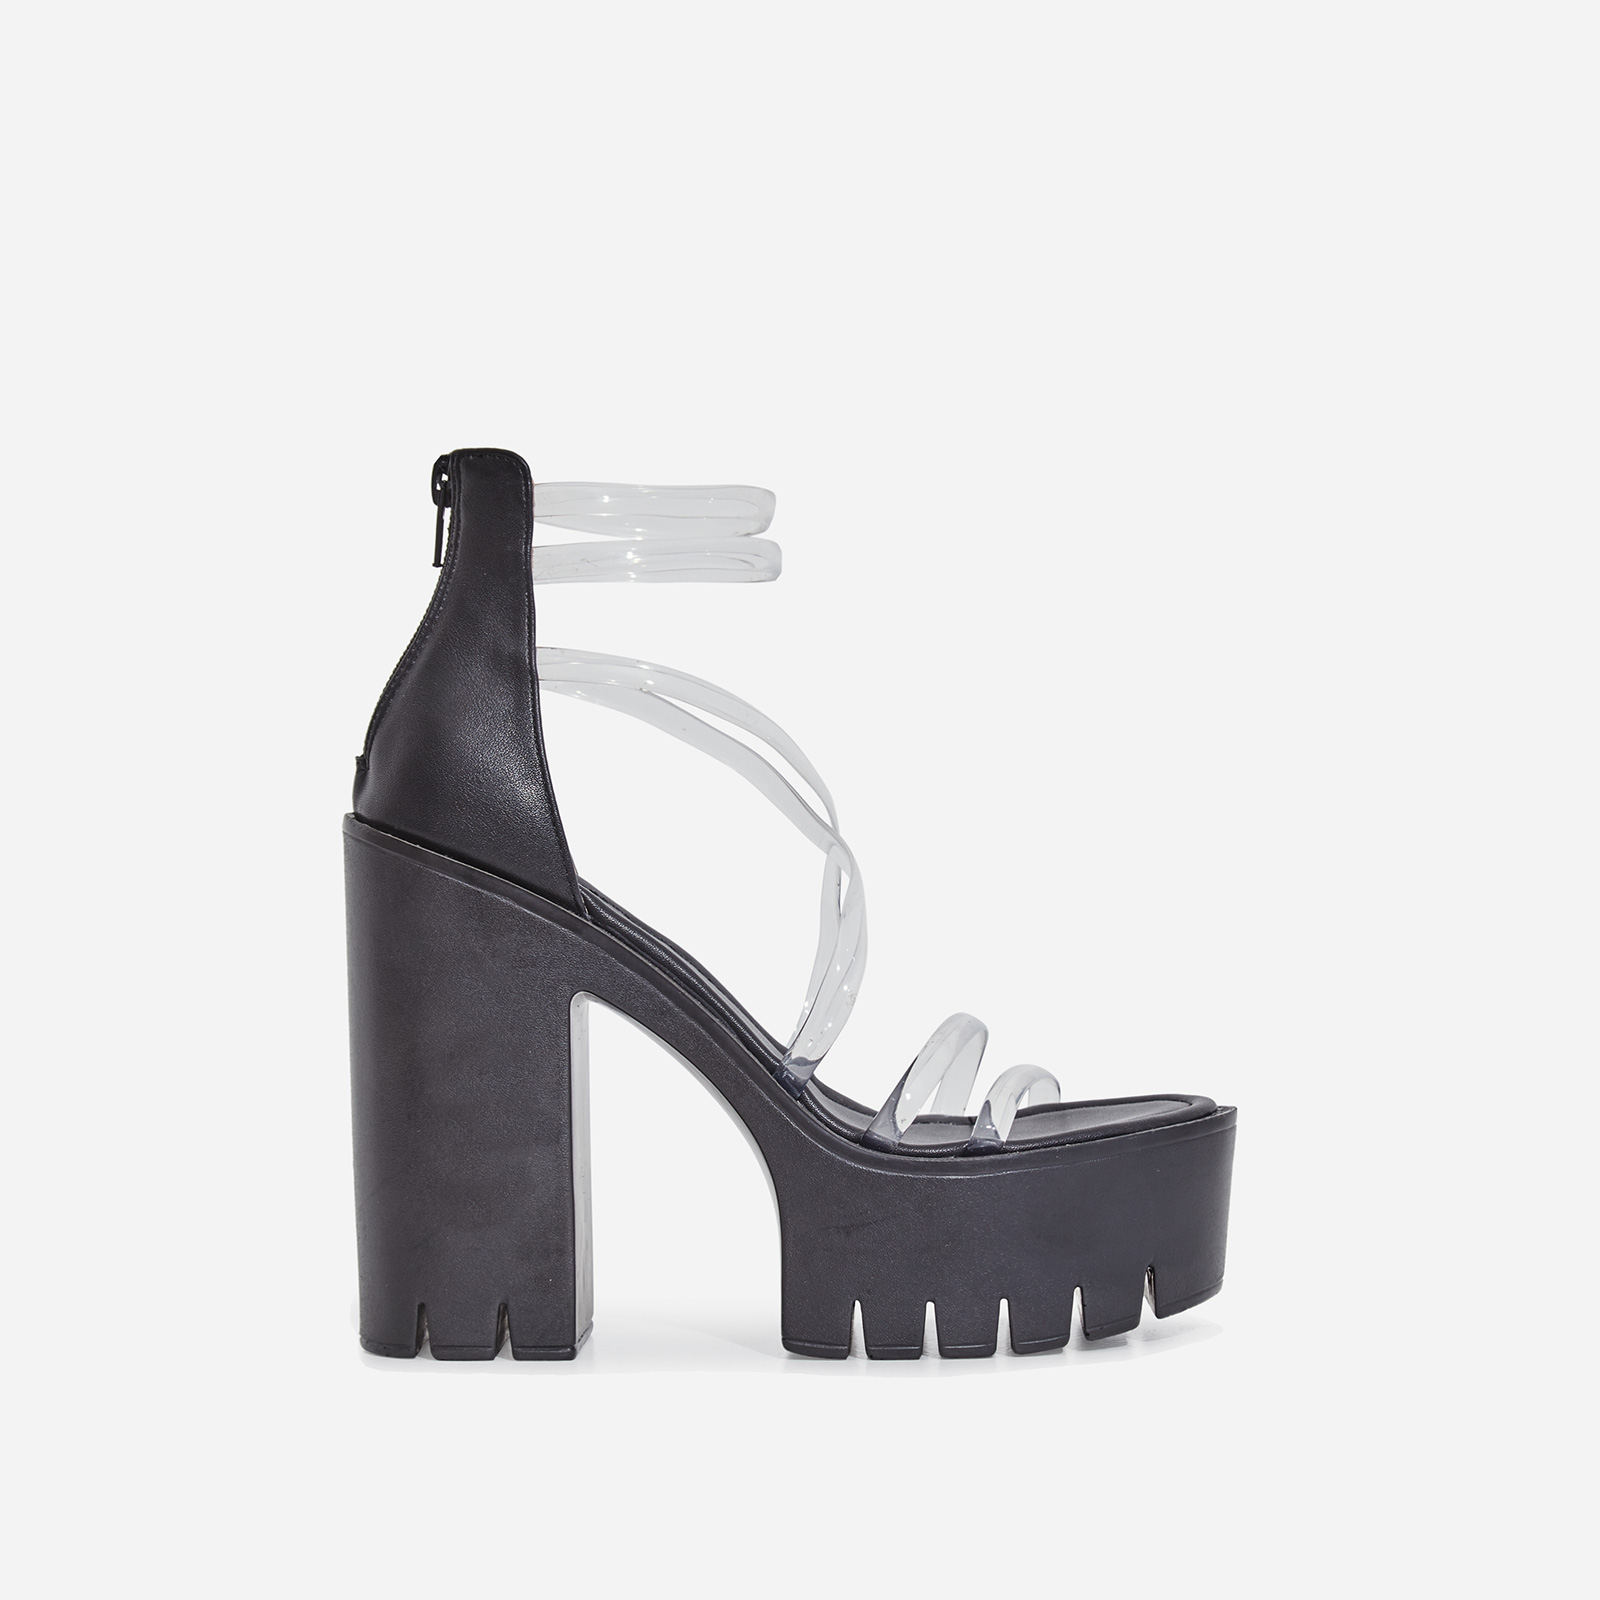 Shiloh Perspex Platform Block Heel In Black Faux Leather